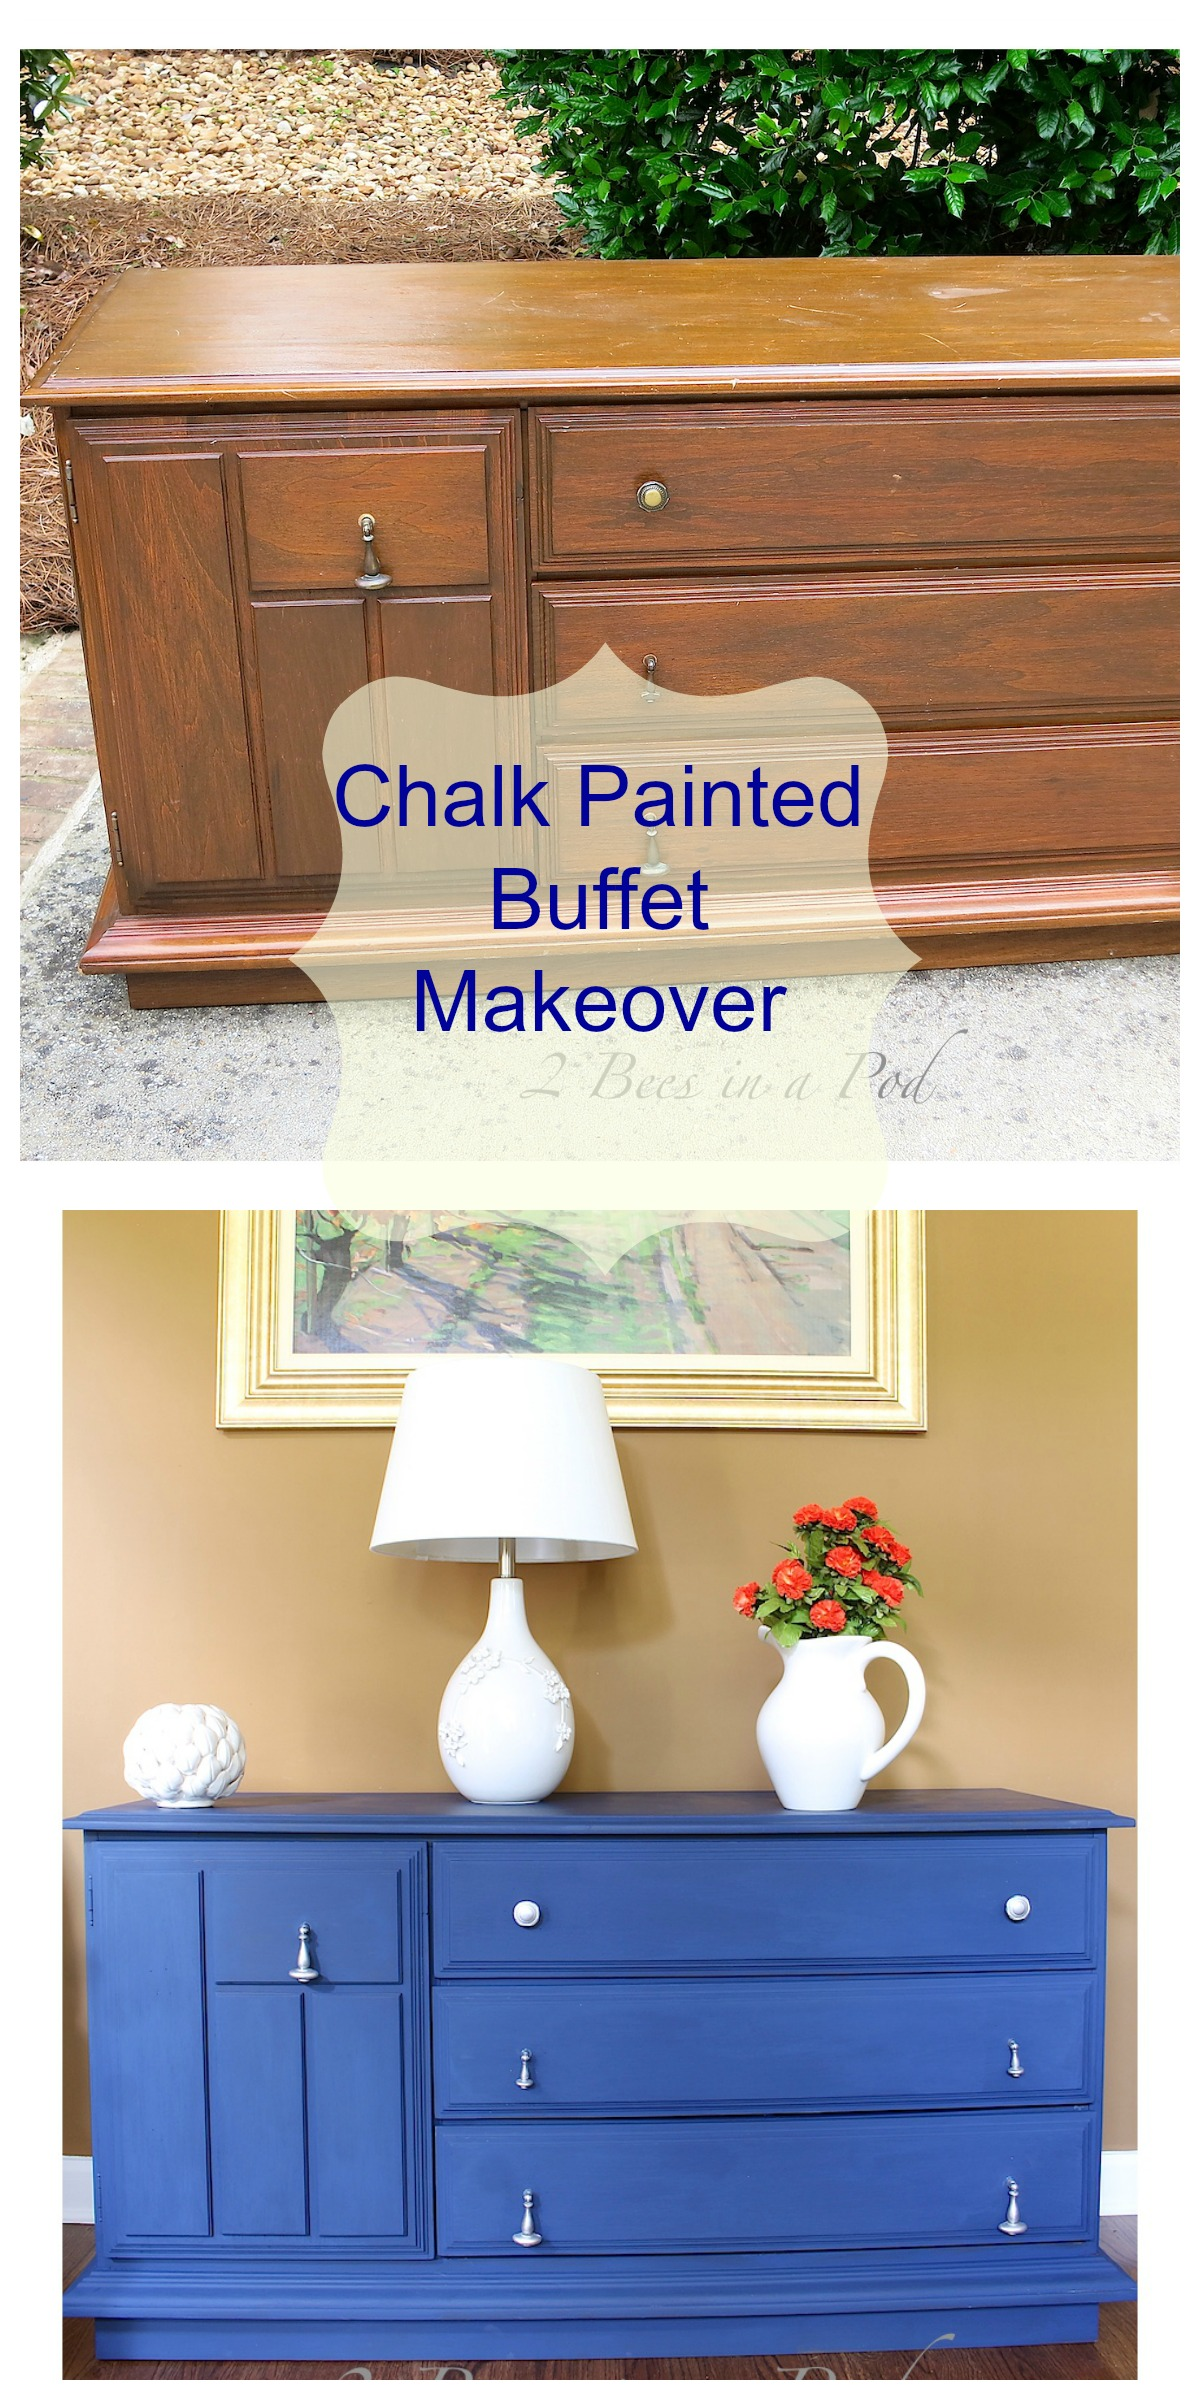 bedroom furniture makeover image19. Painted Furniture - Annie Sloan Chalk Paint Buffet Makeover In Napoleonic Blue Bedroom Image19